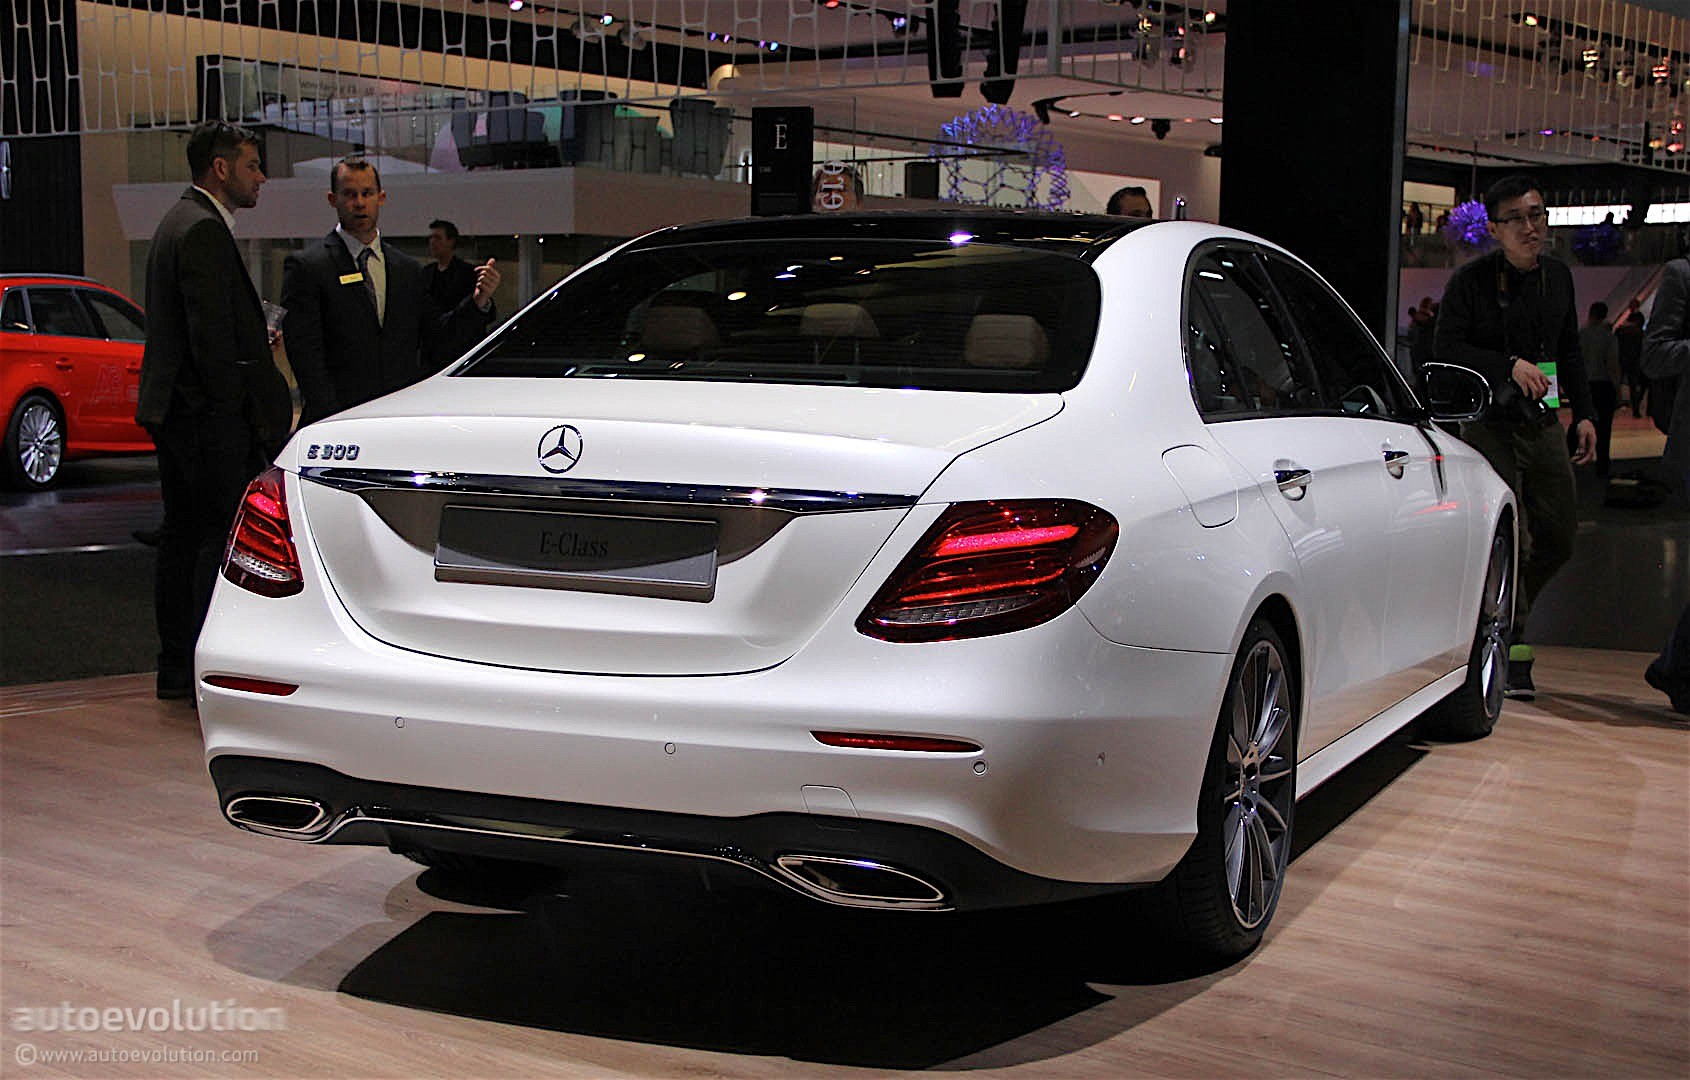 2017 mercedes benz e class unveiled at the 2016 detroit auto show autoevolution. Black Bedroom Furniture Sets. Home Design Ideas